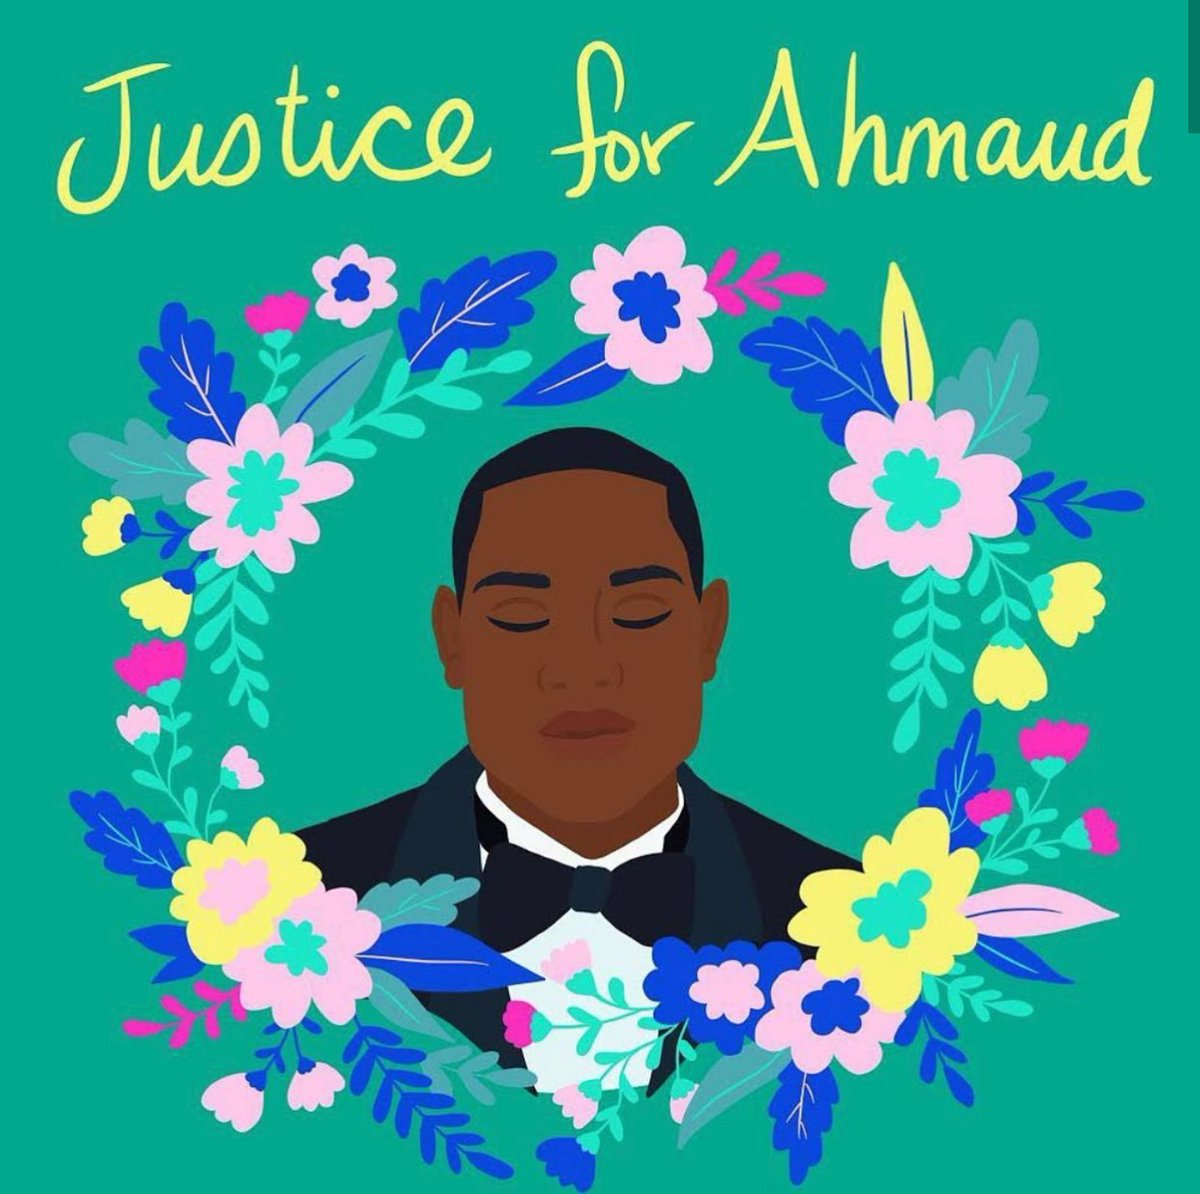 Today would have been Ahmaud Arbery's 26th birthday but he was lynched in Georgia two months ago and no justice has been served.   Follow @Georgia_NAACP for updates  #WeRunWithMaud  #IRunwithMaud #AhmaudArbery  #Georgia  #Justice  #NoJusticeNoPeace  #BlackTwitter  #BlackLove https://t.co/ncMGKFZyST